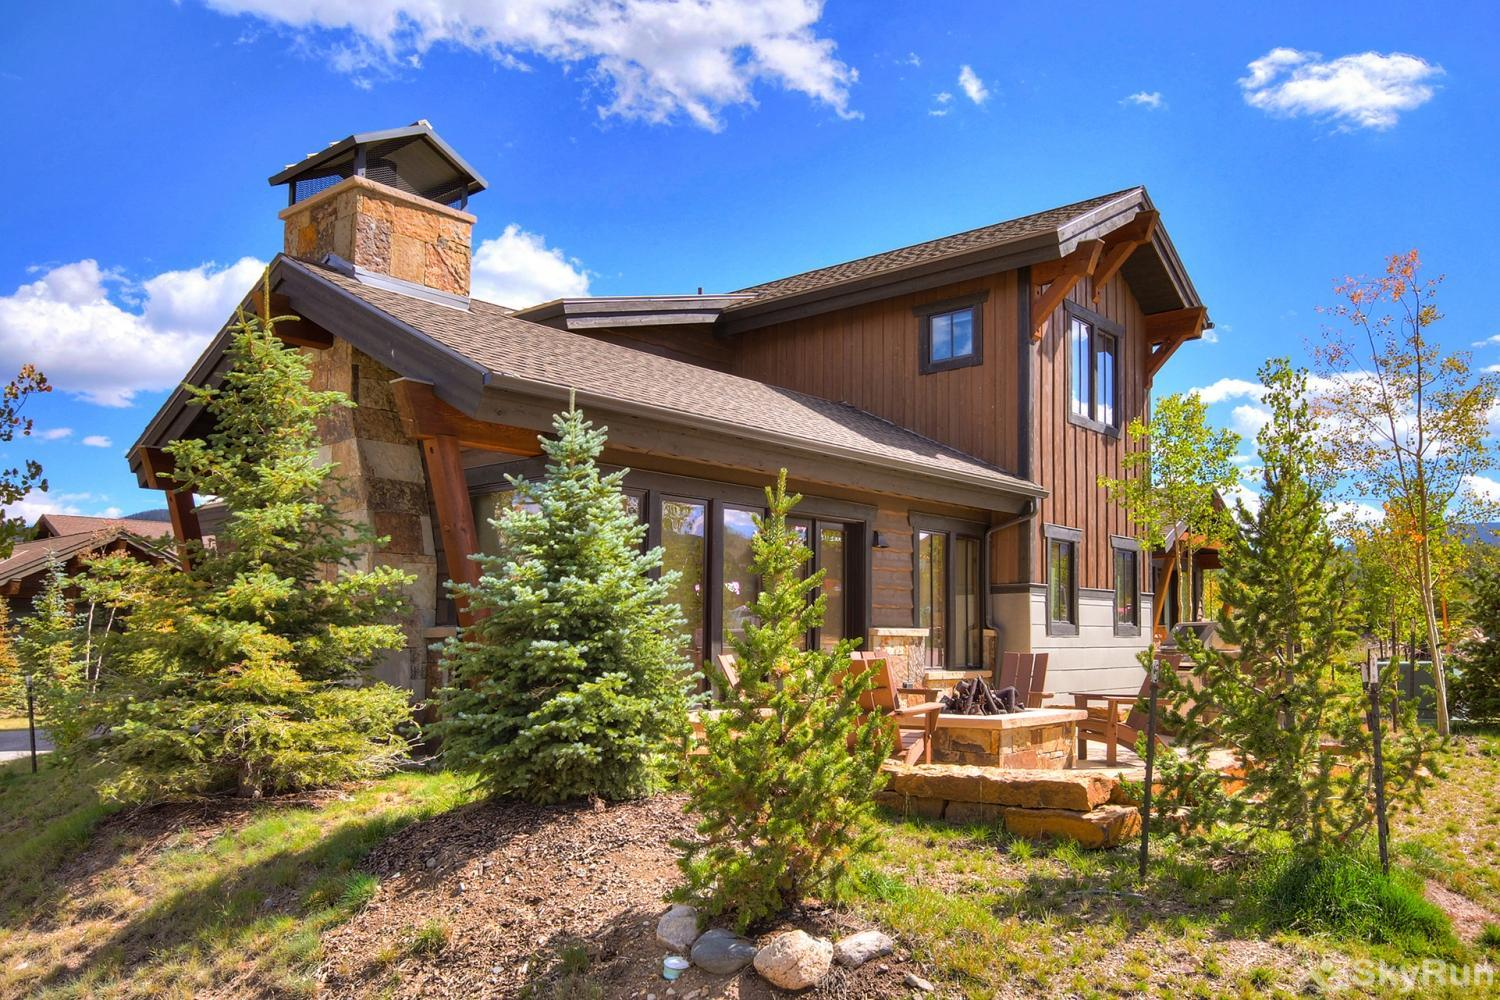 The Shores Lodge Luxury vacation home in Breckenridge, Colorado